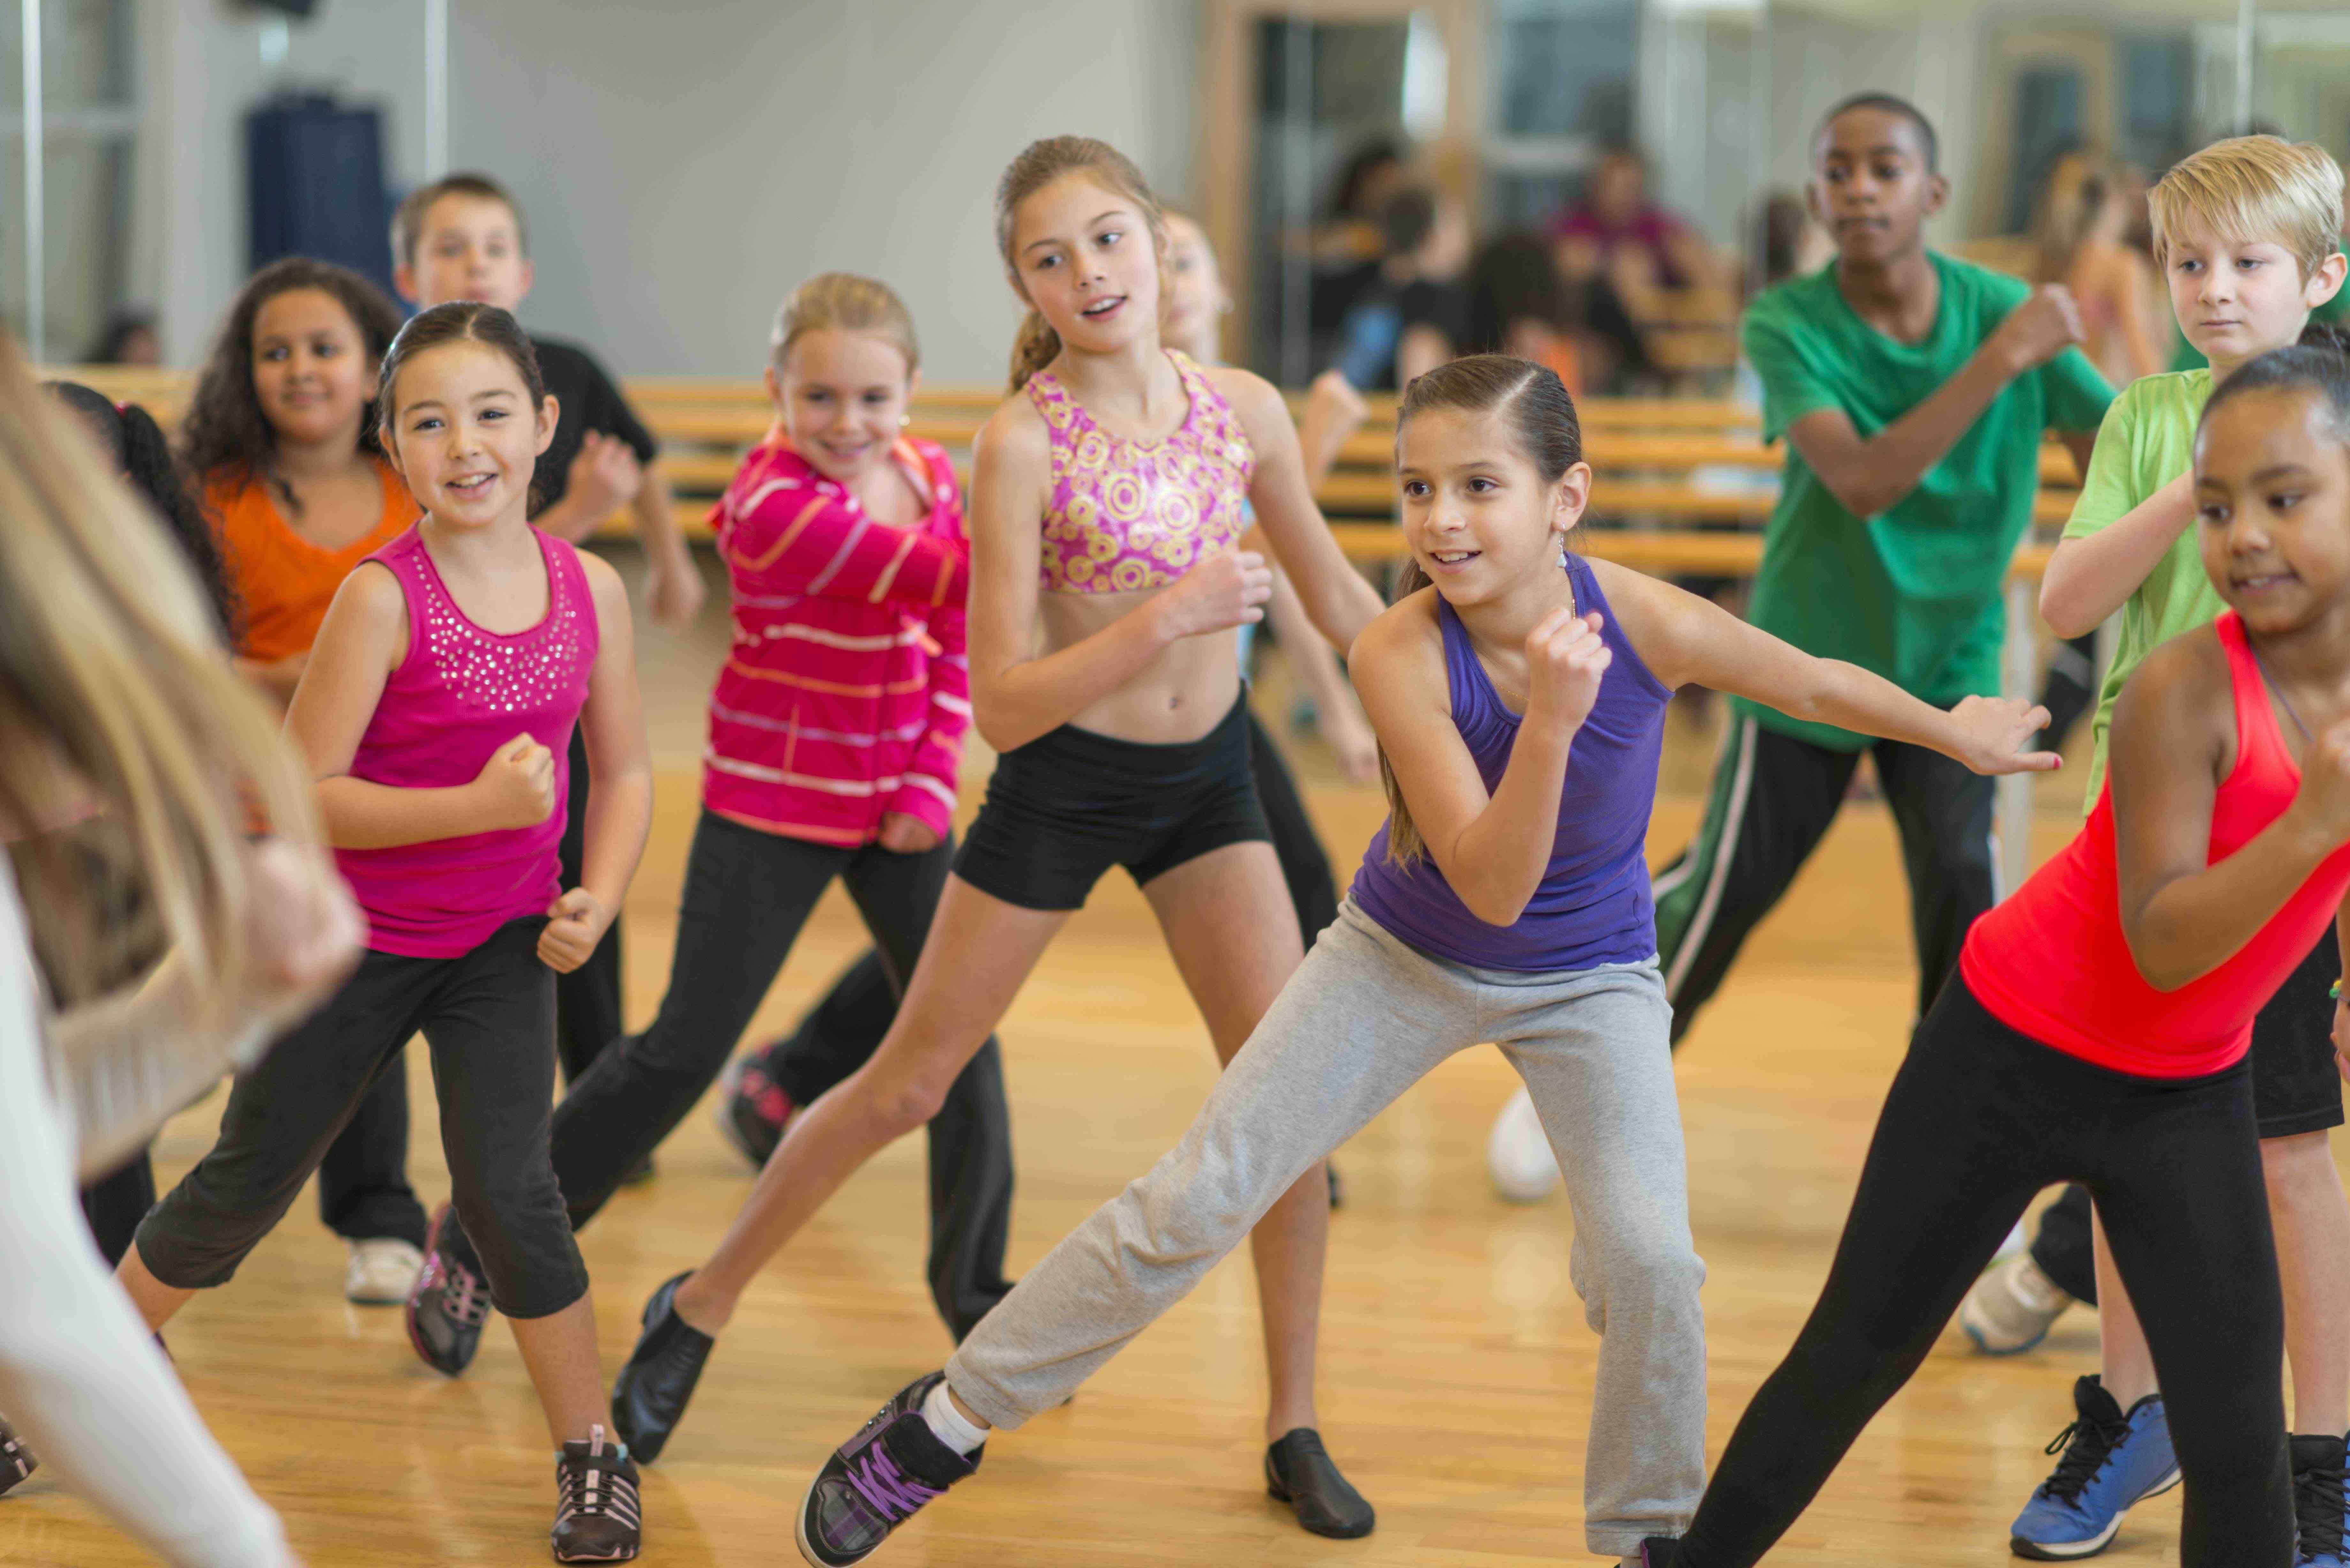 Diverse group of children taking a dance fitness class